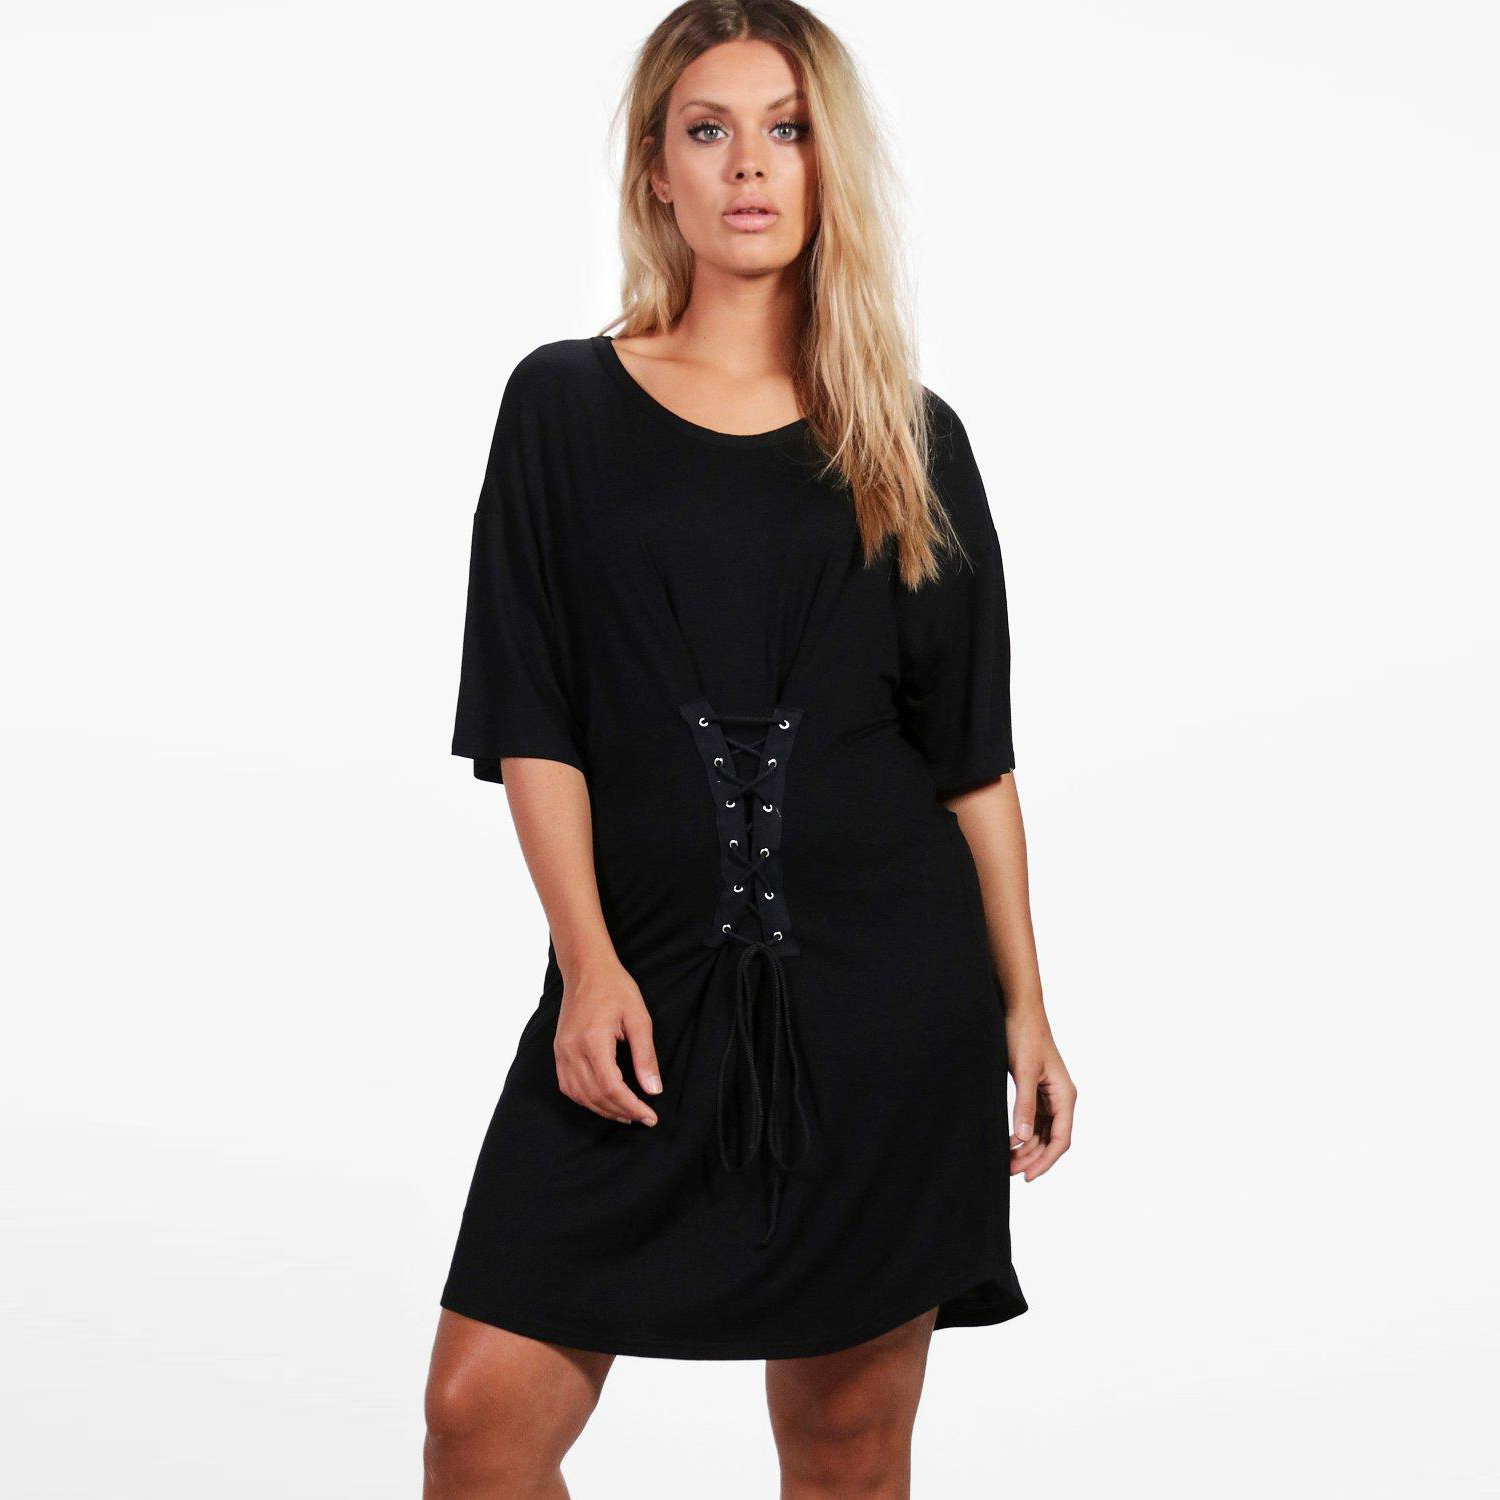 74e4a1172a8 MCO Autumn Ulitimate Easy Lace Up Front Plus Size Womens Dress Basic Black Tunic  Dresses Oversized Loose Women Clothing 6XL 7XL-in Dresses from Women s ...